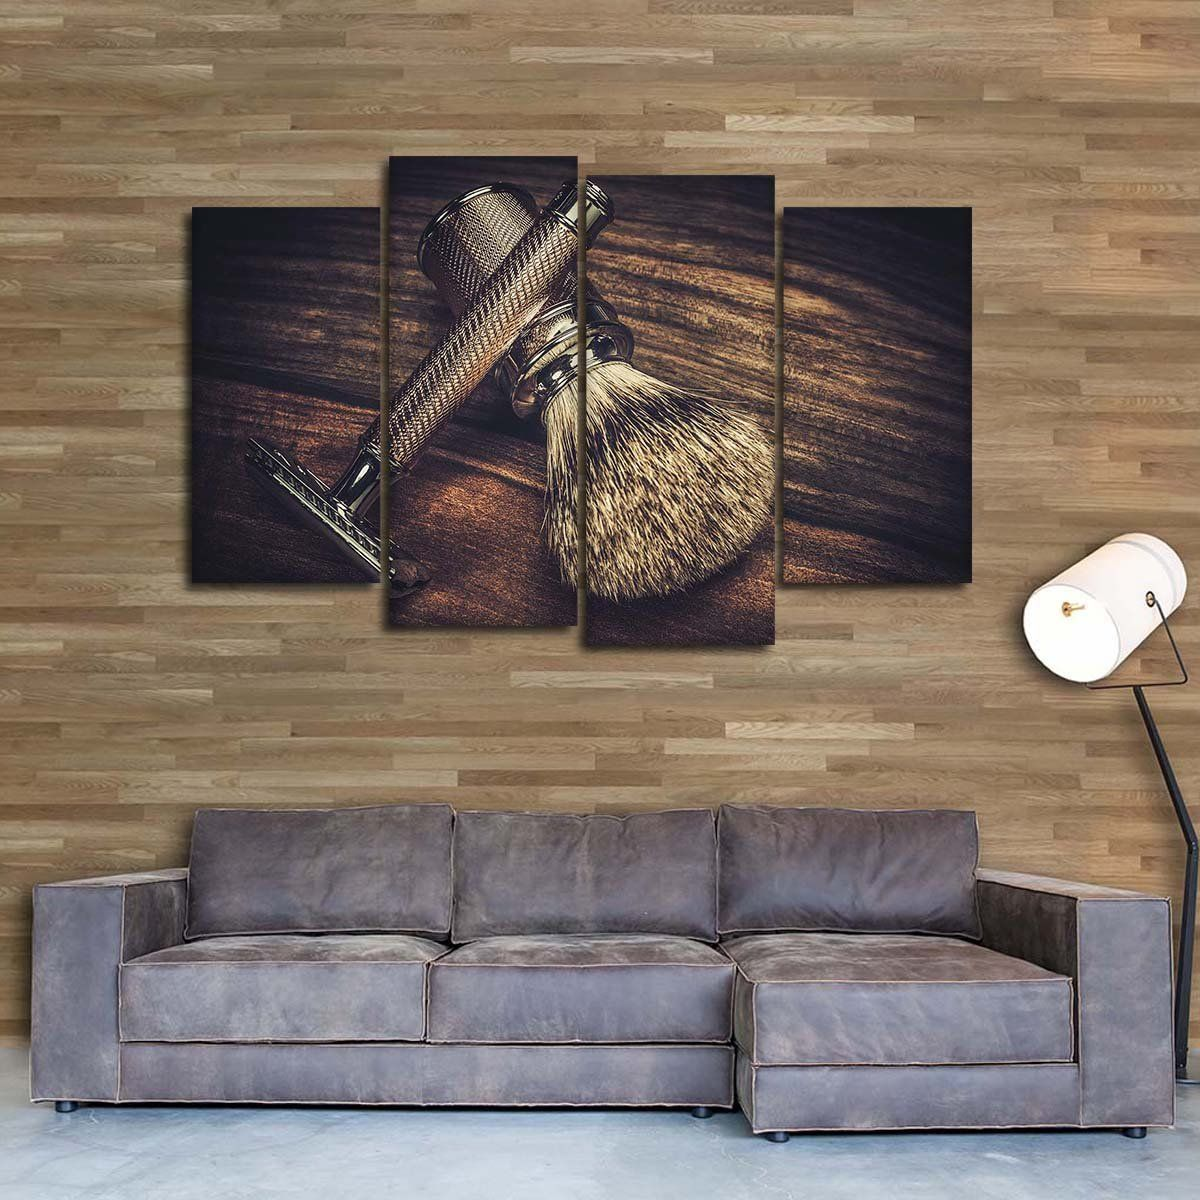 Epic Shave Multi Panel Canvas Wall Art In 2020 Canvas Wall Art Barber Shop Decor Barbershop Design Interior